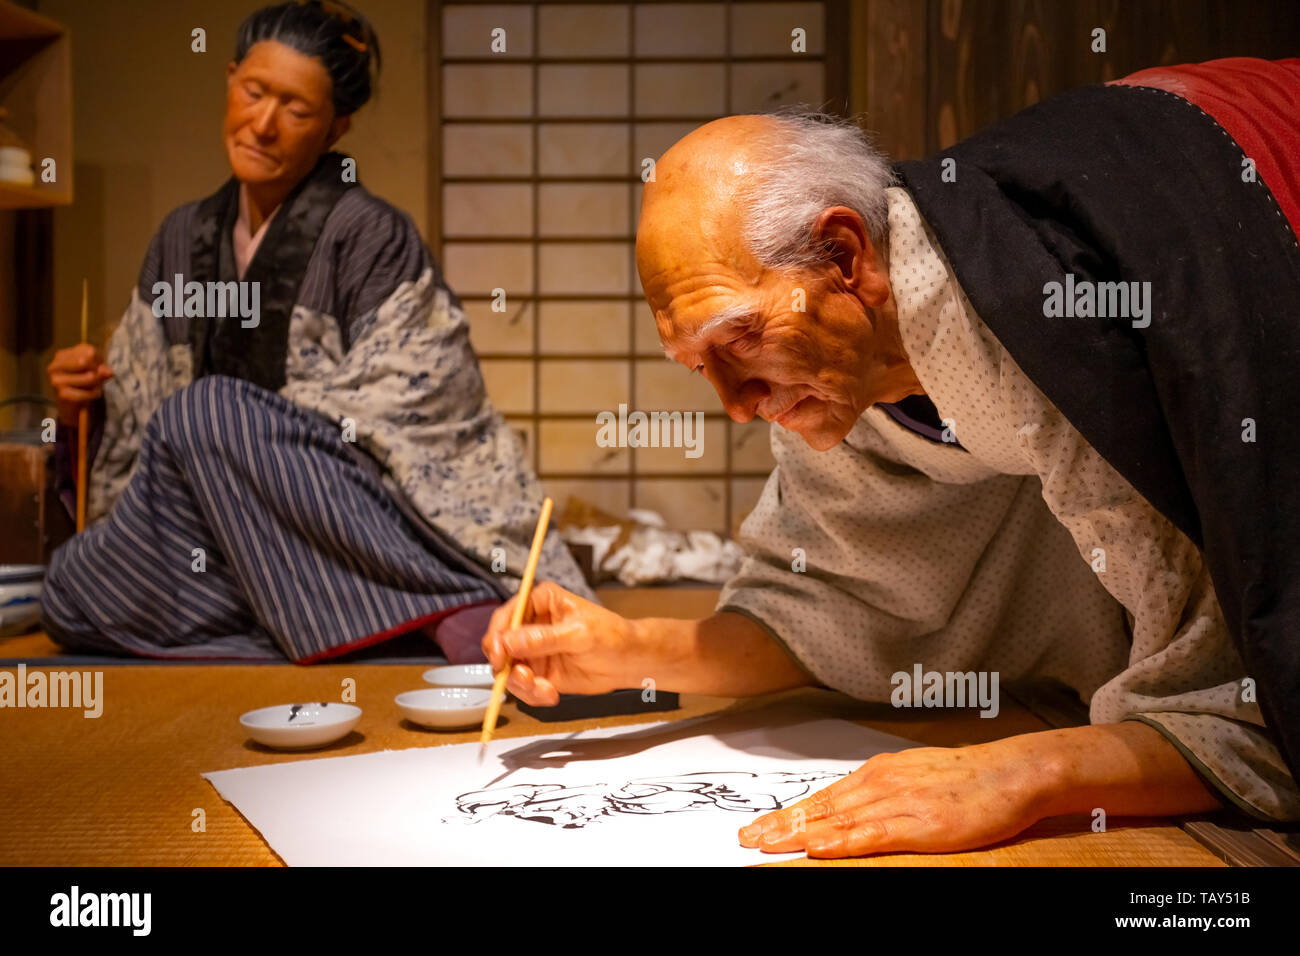 Tokyo, Japan - April 25, 2018: View of an animatronic figures of the Ukiyo-e artist (Japanese woodblock prints), Katsushika Hokusai and his daughter O - Stock Image